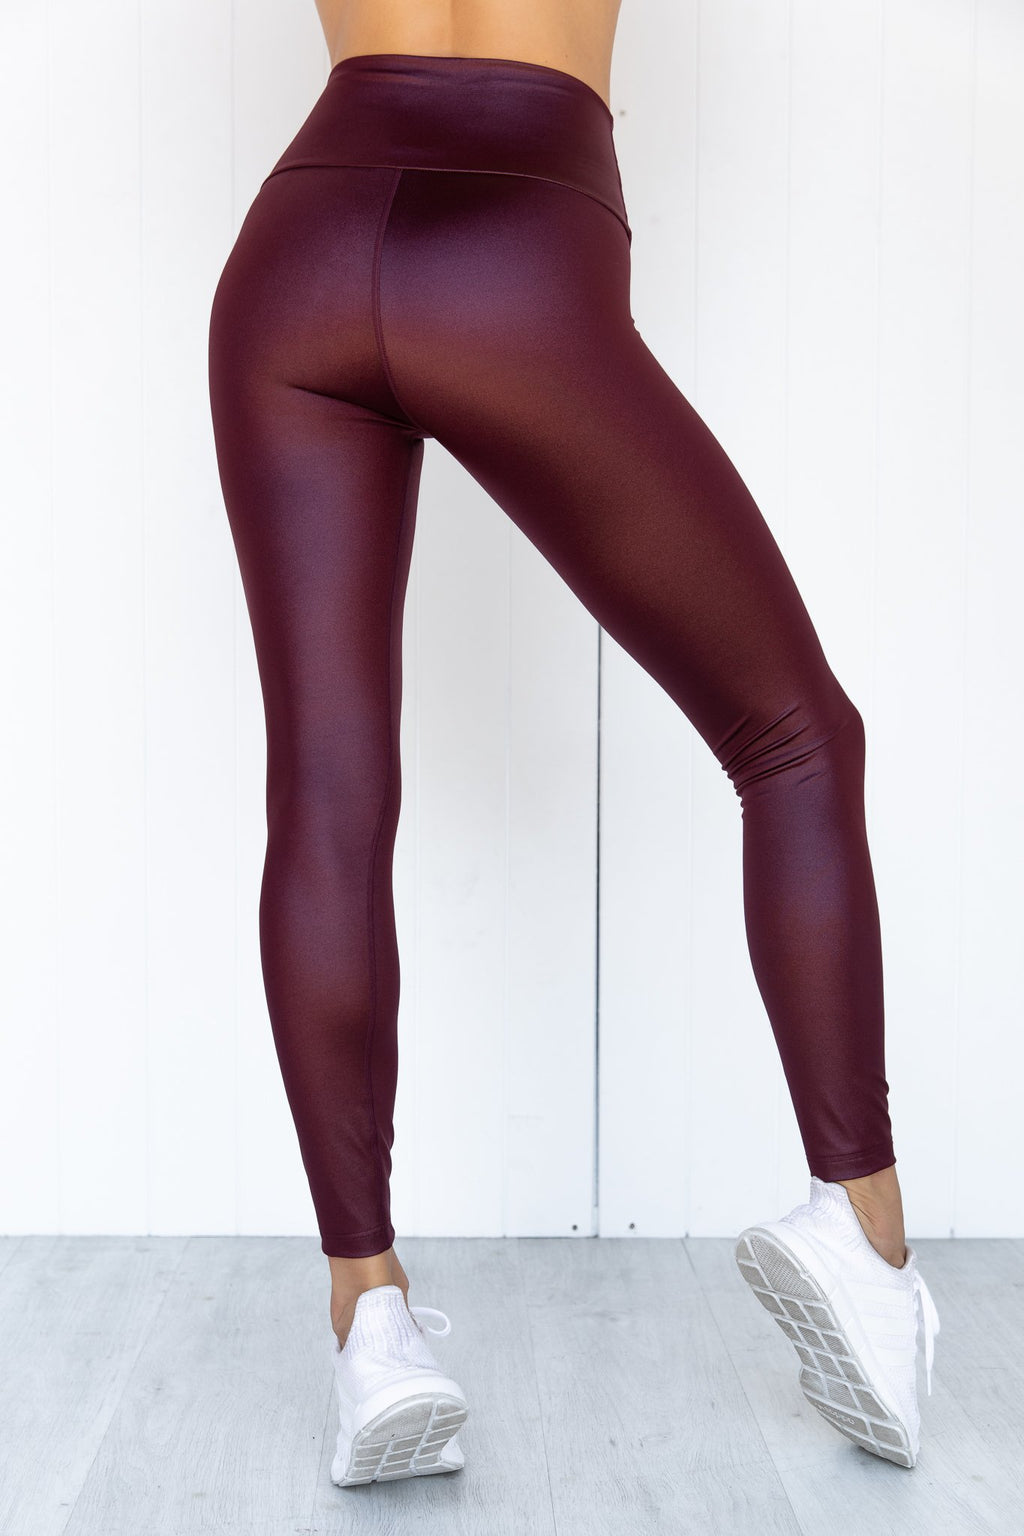 Crystal Werk It Tights - Claret